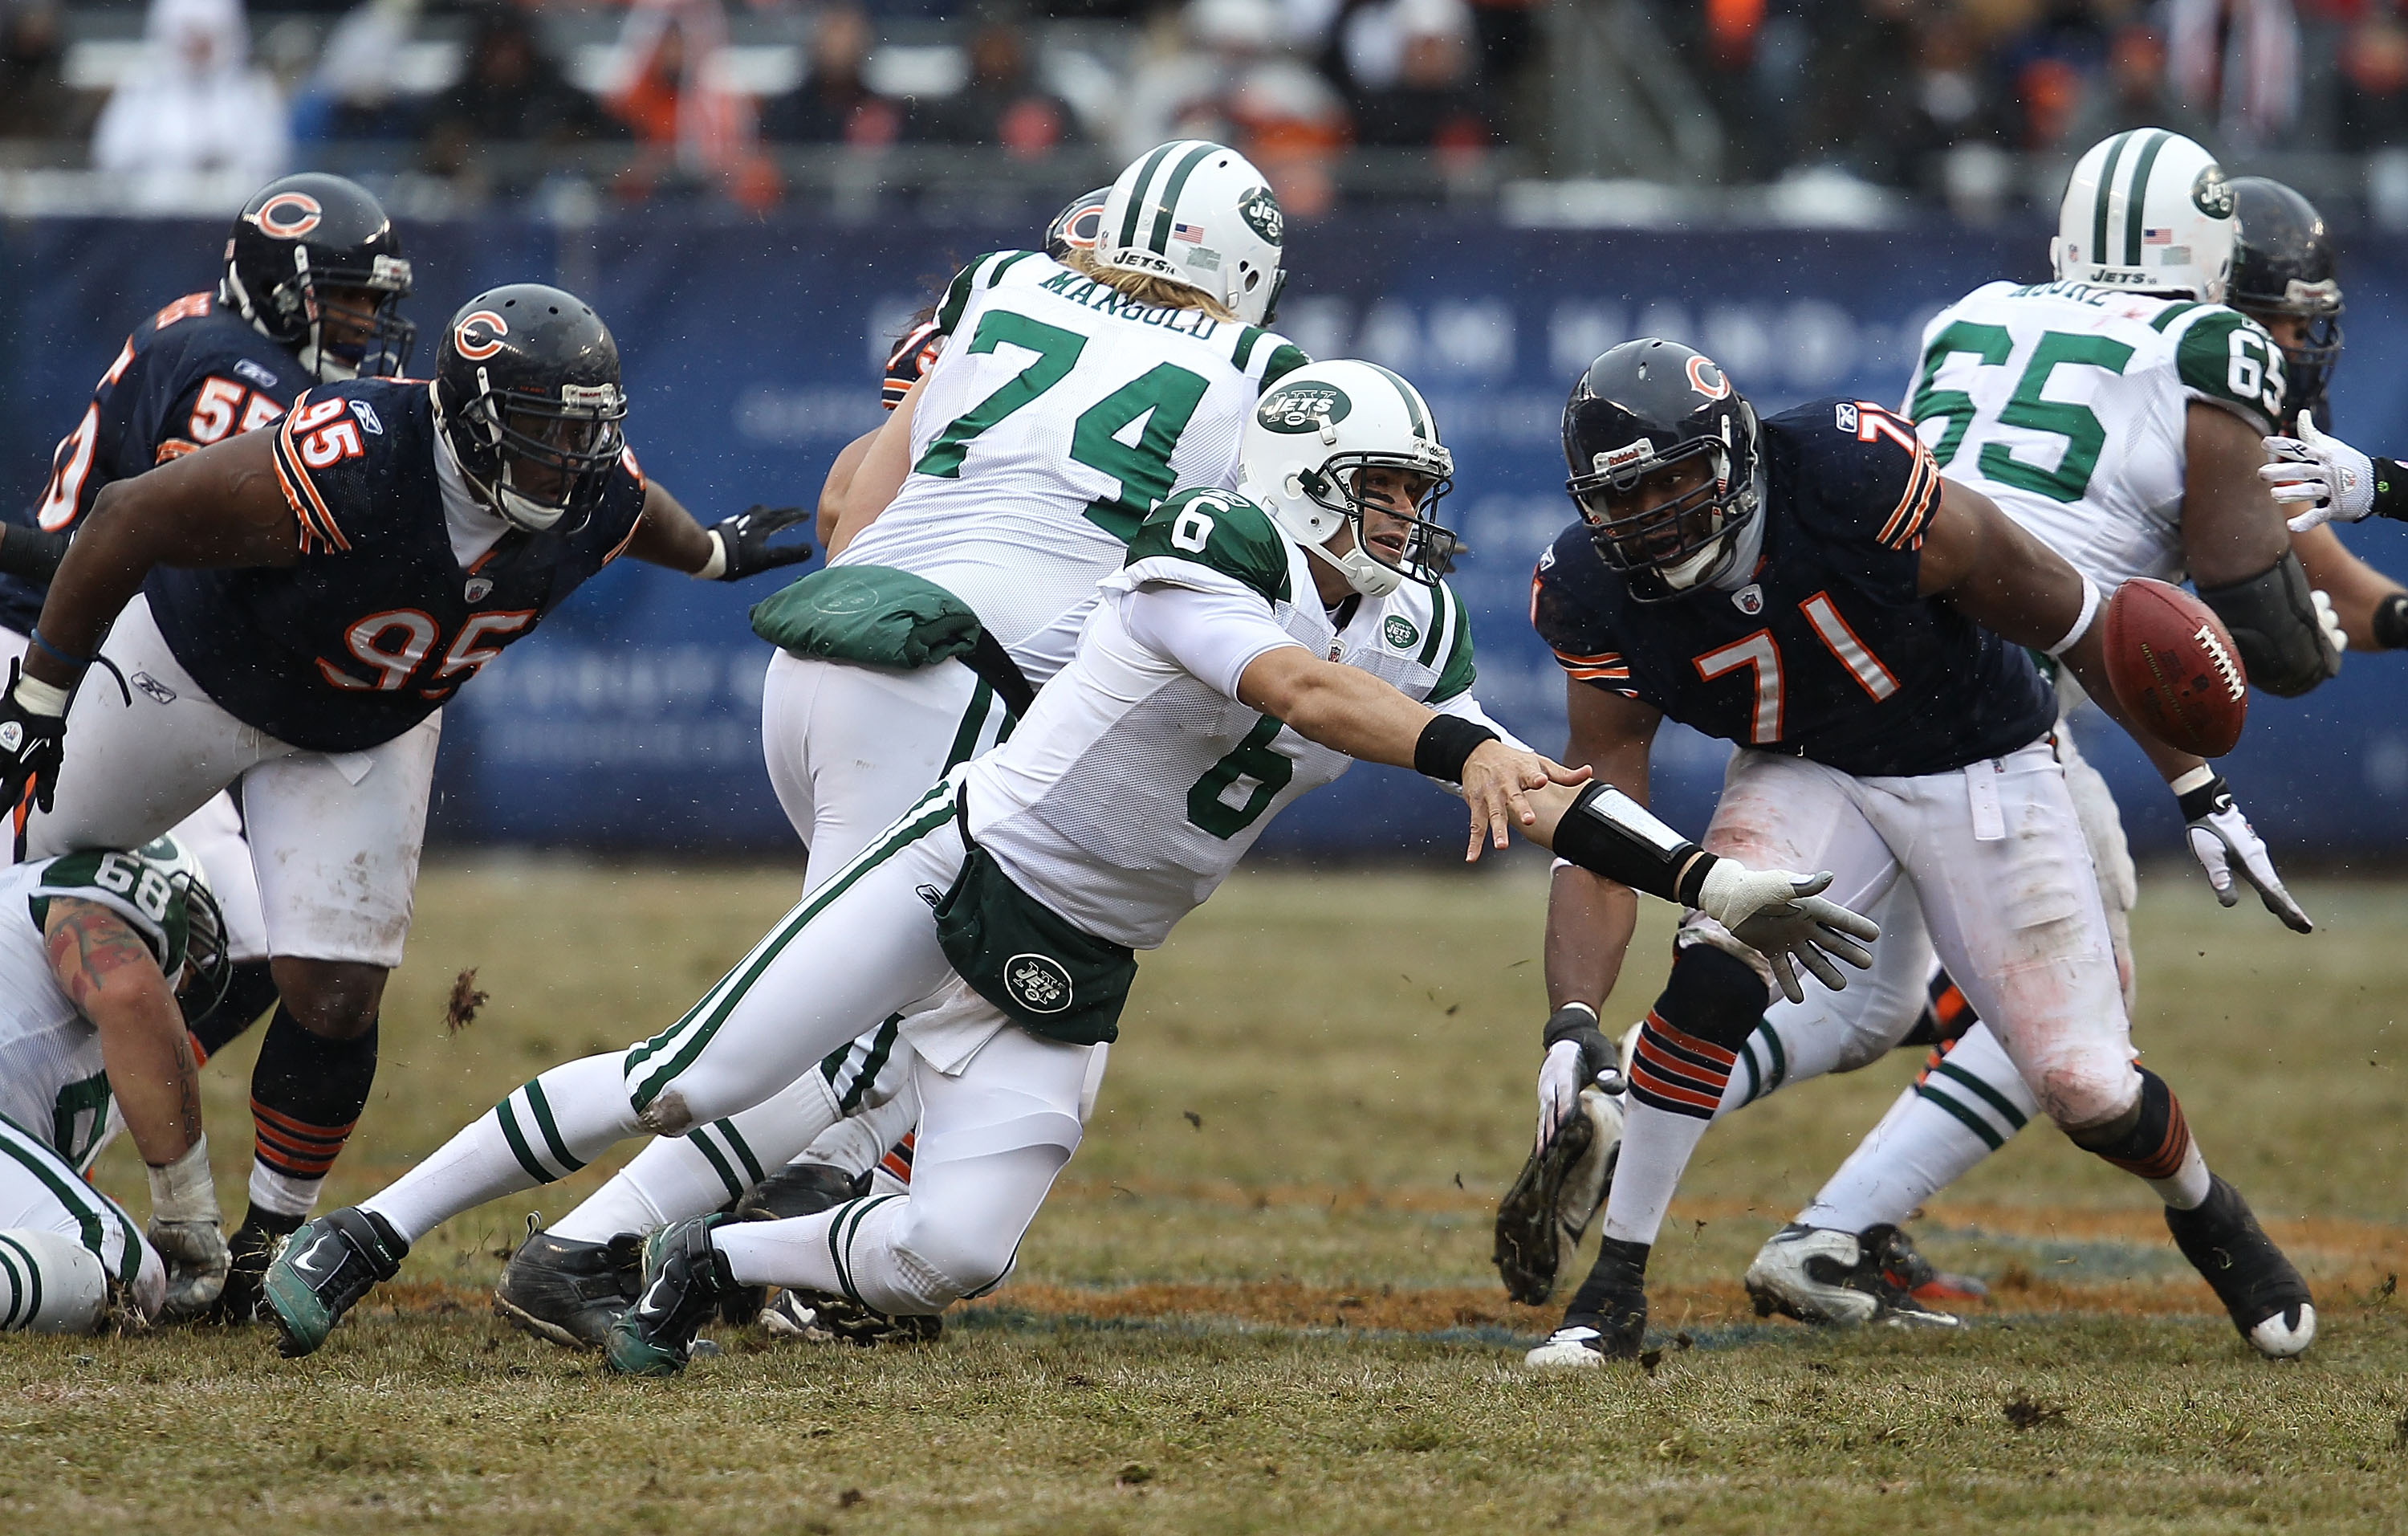 CHICAGO, IL - DECEMBER 26: Mark Sanchez #6 of the New York Jets slips as he tosses the ball to a running back as Anthony Adams #95 and Israel Idonije #71 of the Chicago Bears rush at Soldier Field on December 26, 2010 in Chicago, Illinois. The Bears defea